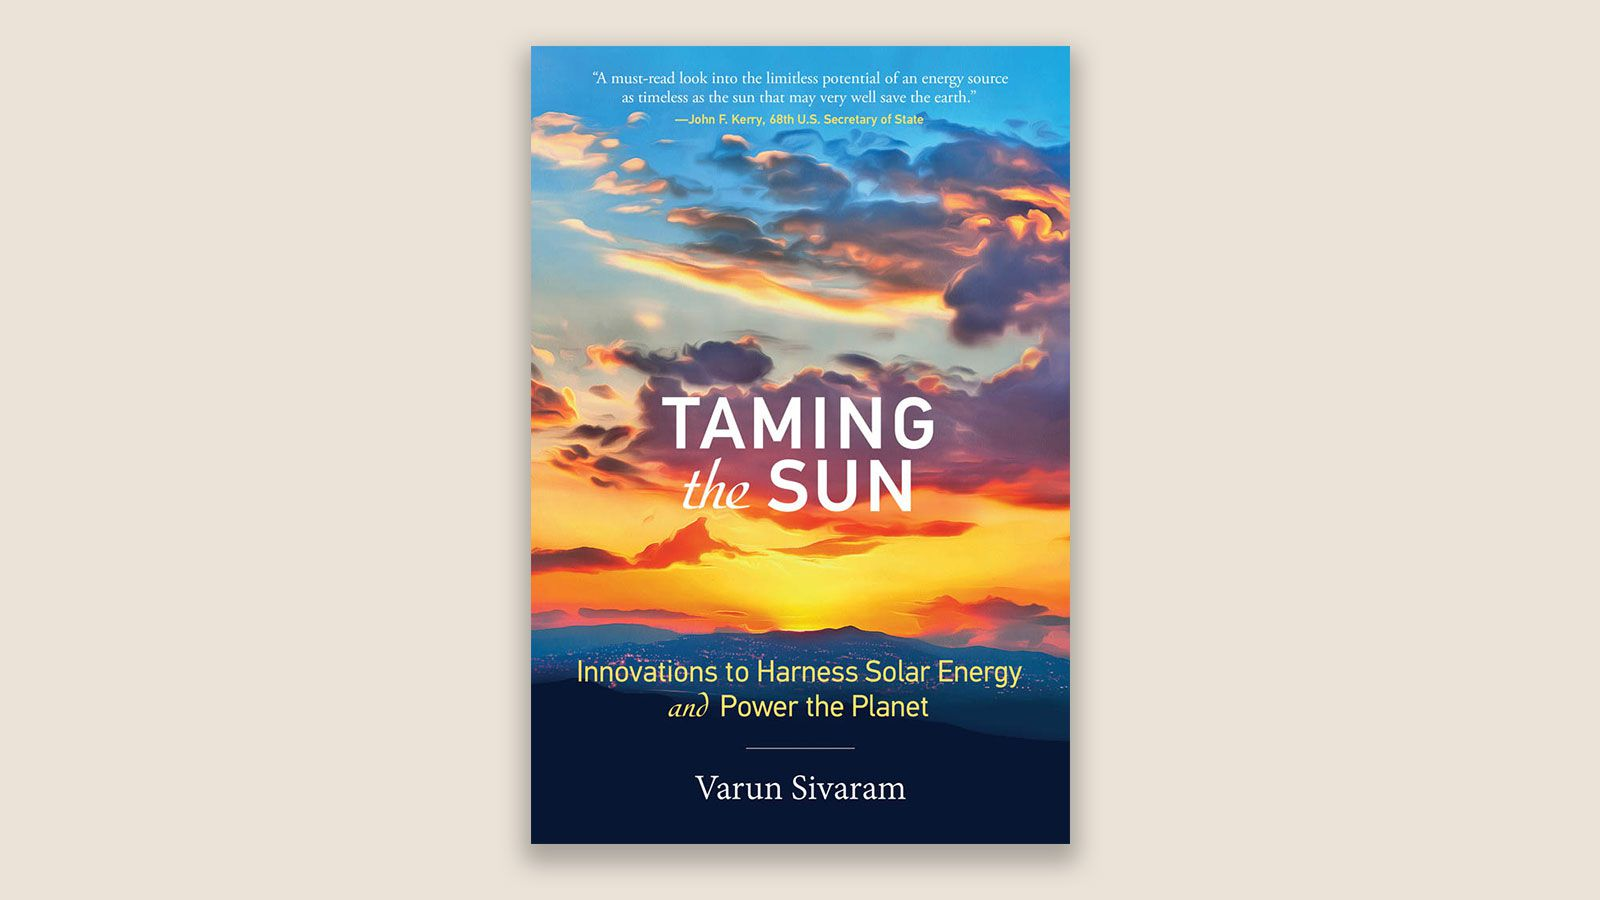 Taming the Sun book cover